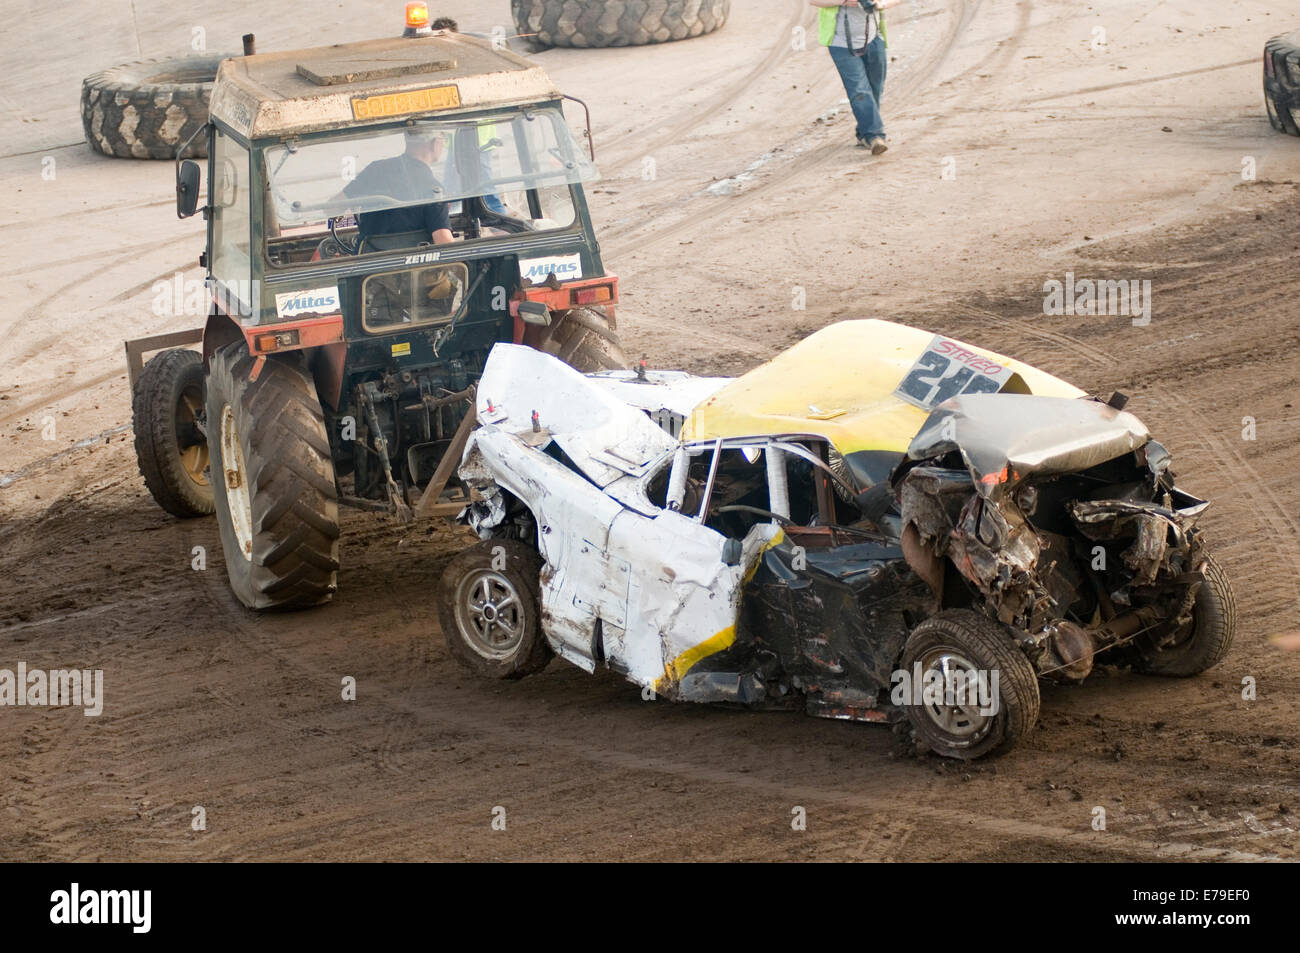 banger racing car cars old mot failure being dragged off towed by a tractor wrecked roadside assistance breakdown - Stock Image